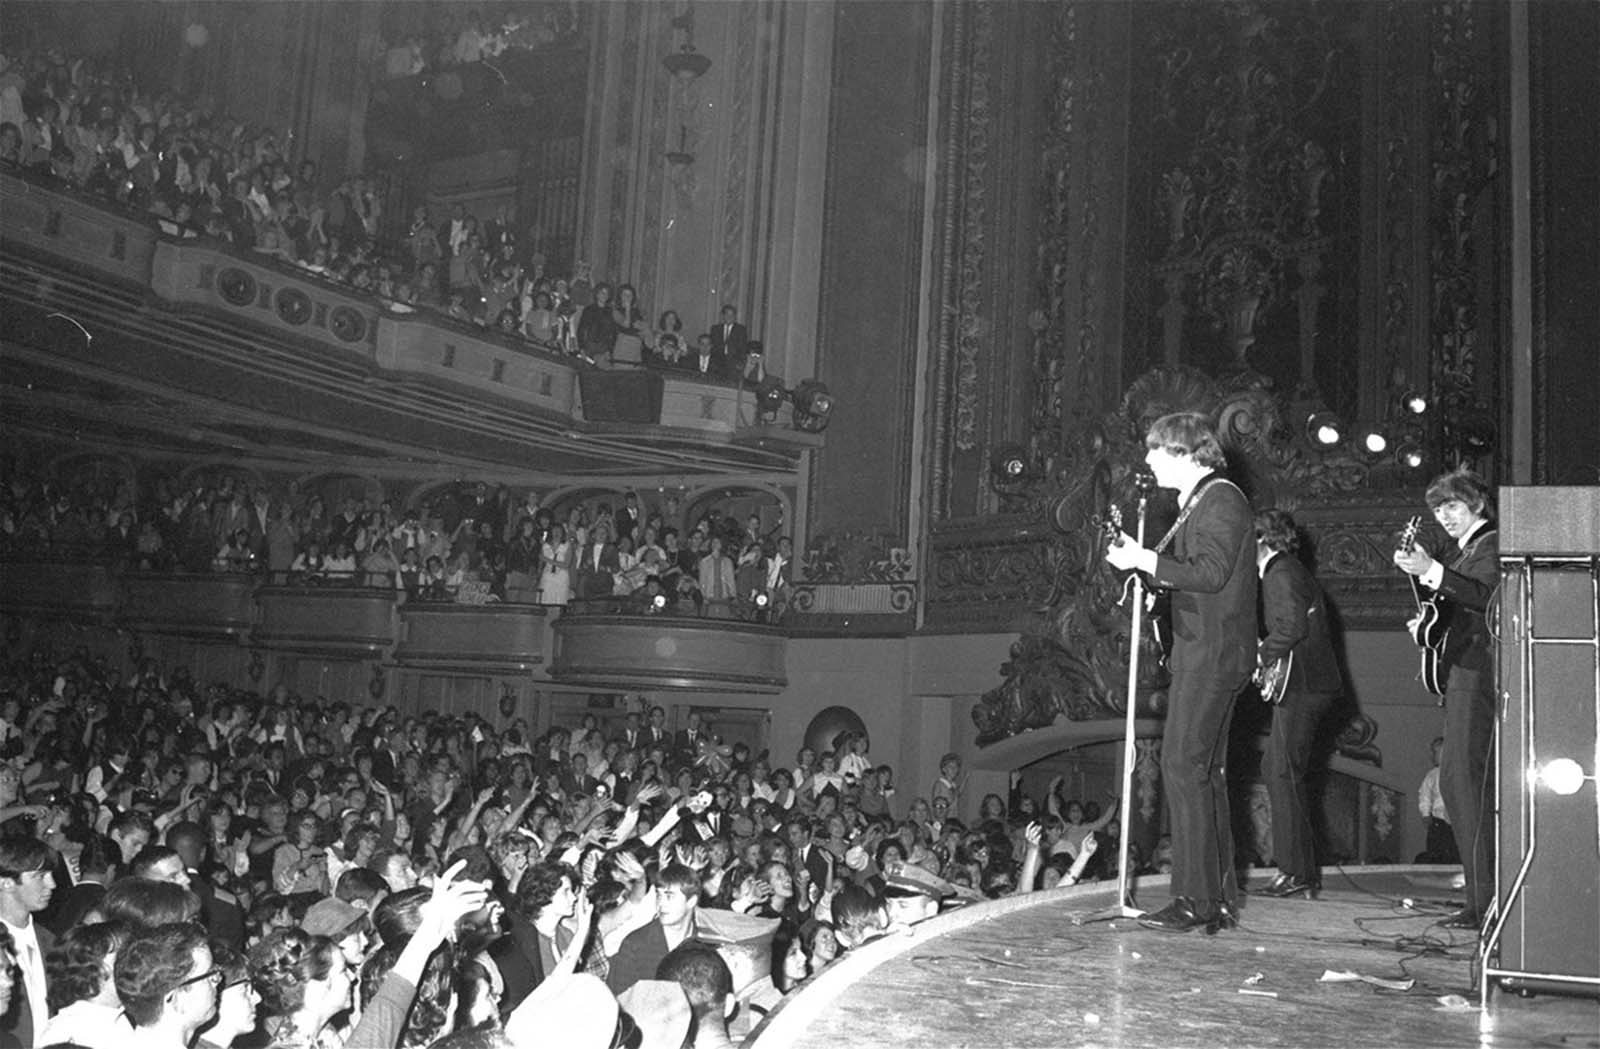 Despite a constant din of screaming teenagers, the Beatles successfully opened their second U.S. tour in San Francisco on August 20, 1964.